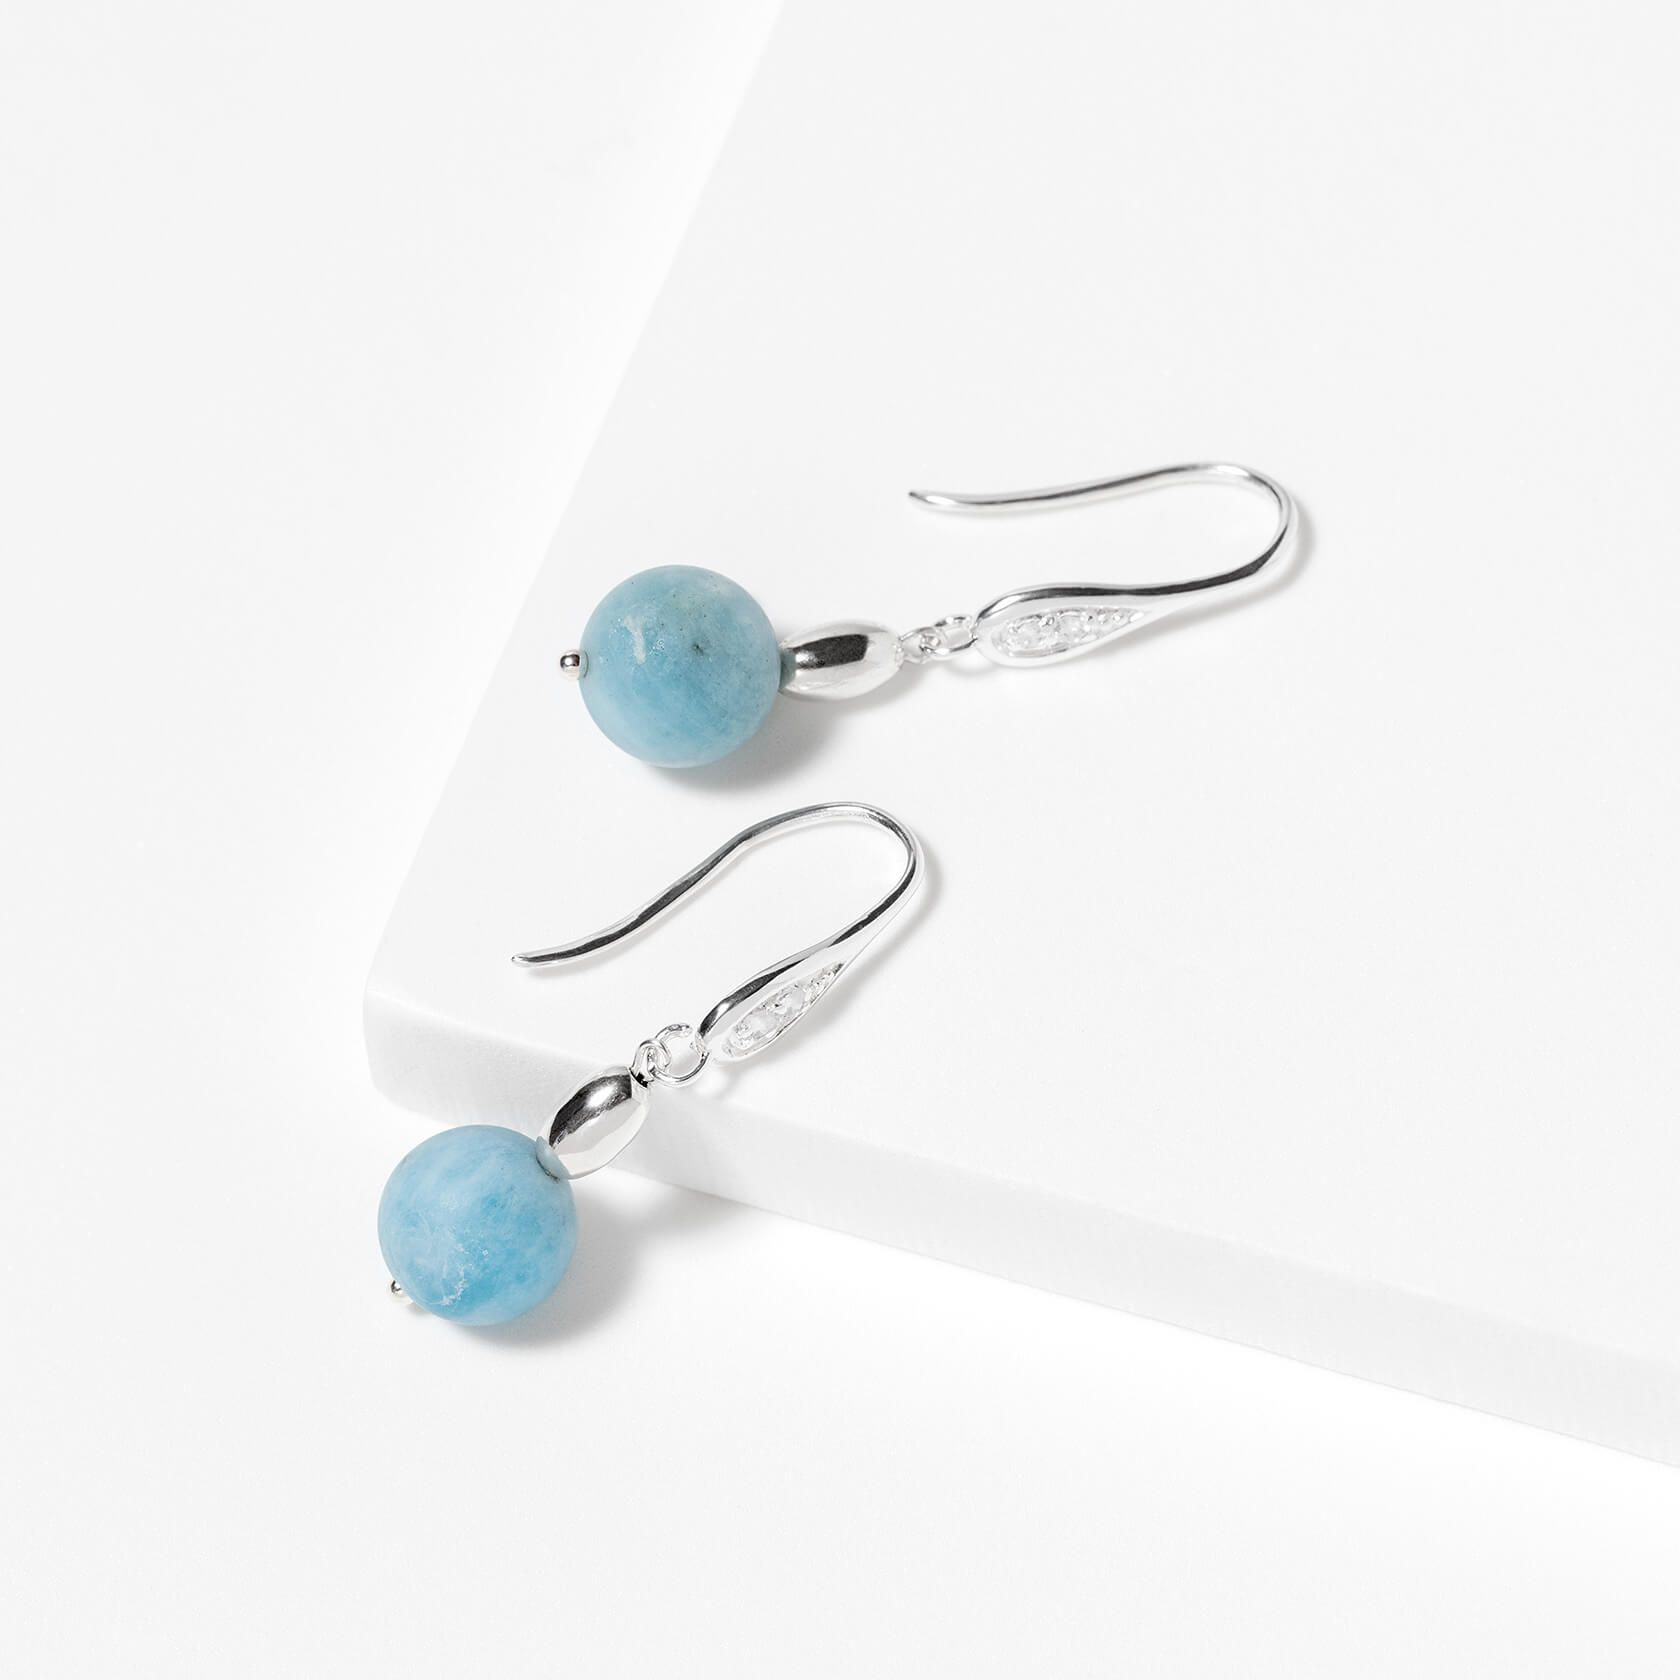 Aquamarine and zircons earrings